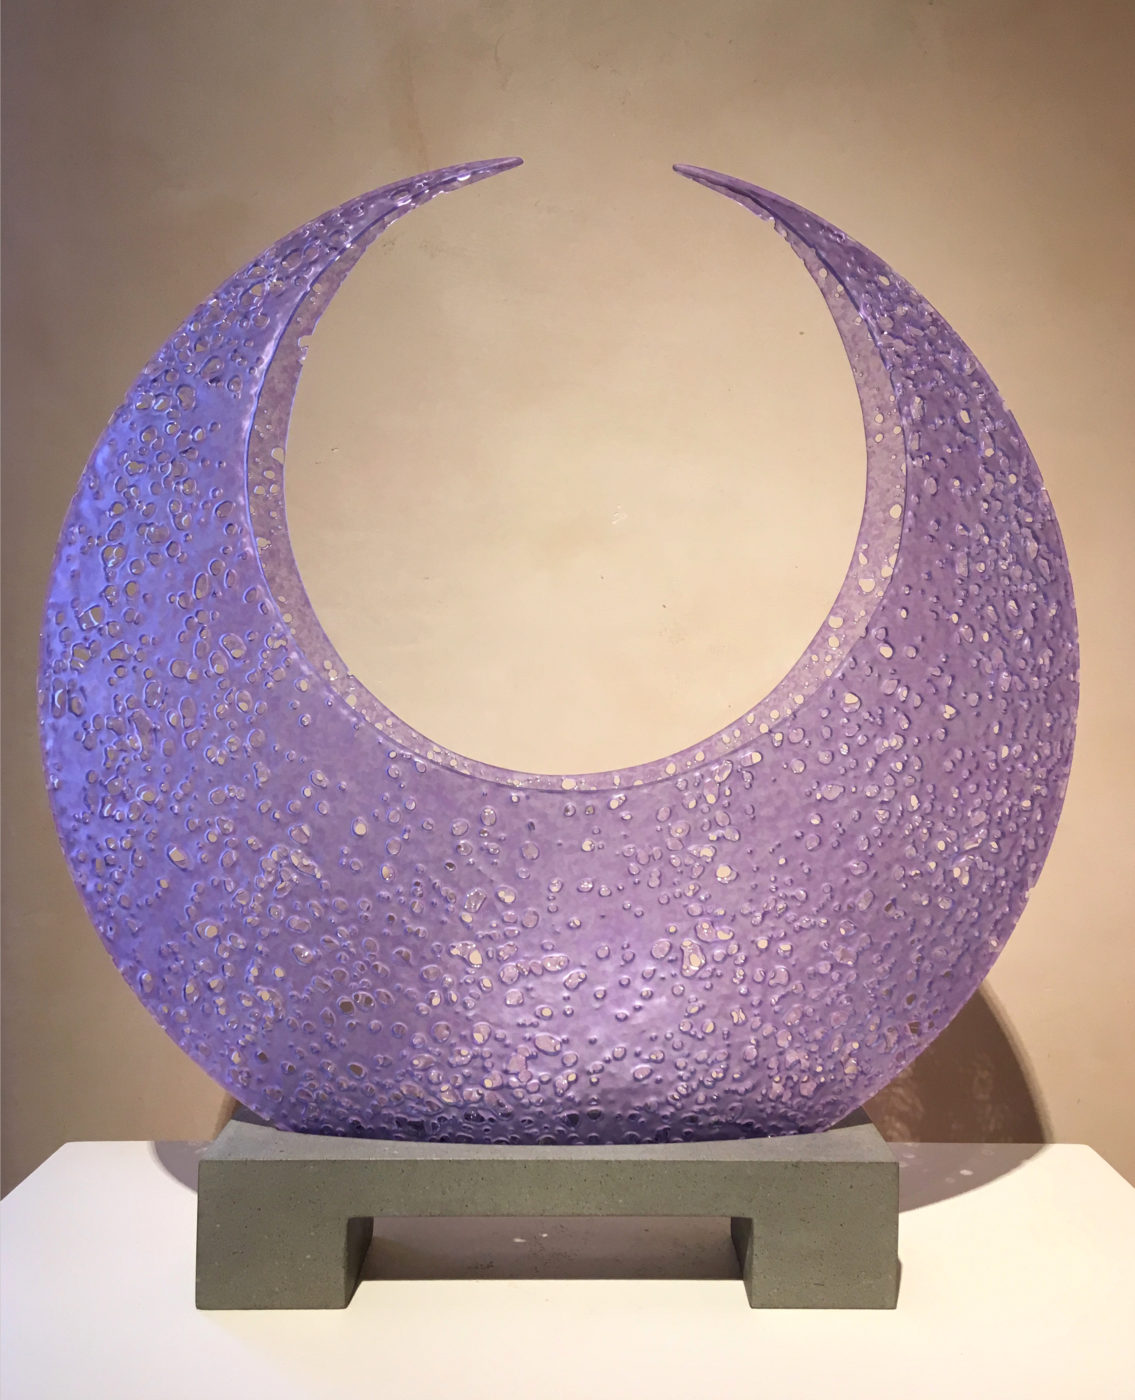 translucent lavender glass sculpture